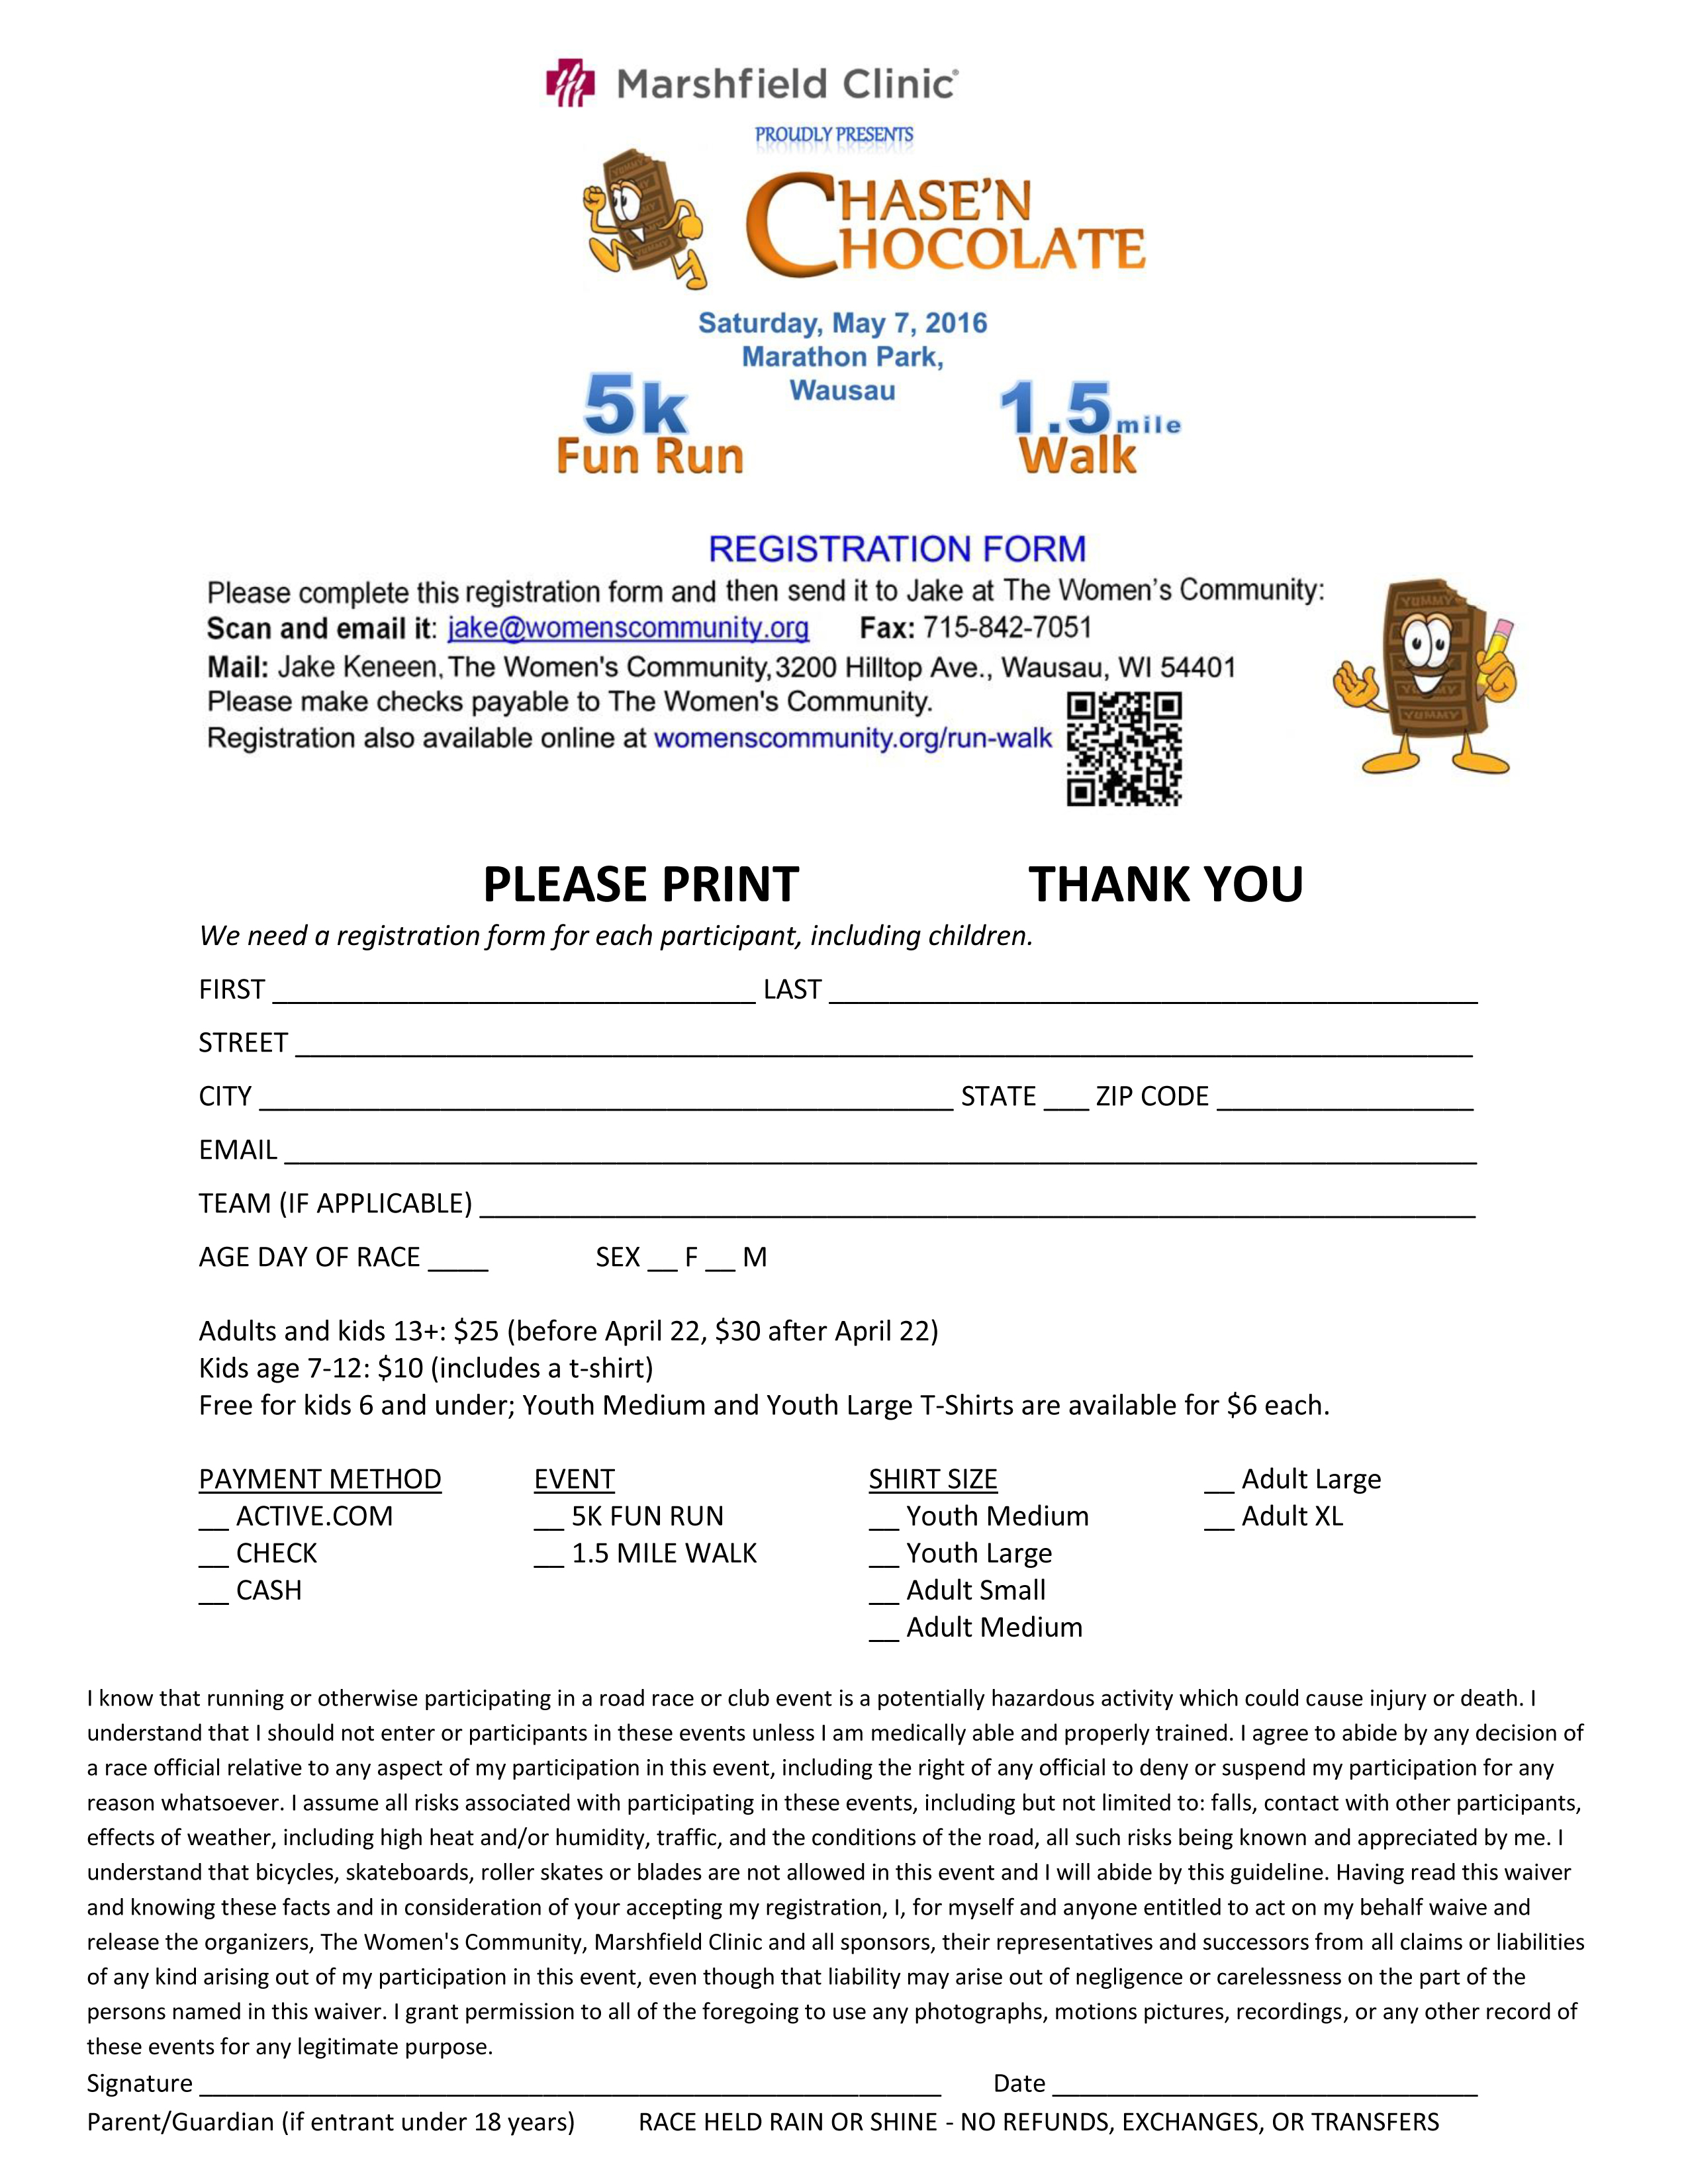 Registration Form Chase'n Chocolate 2016 copy